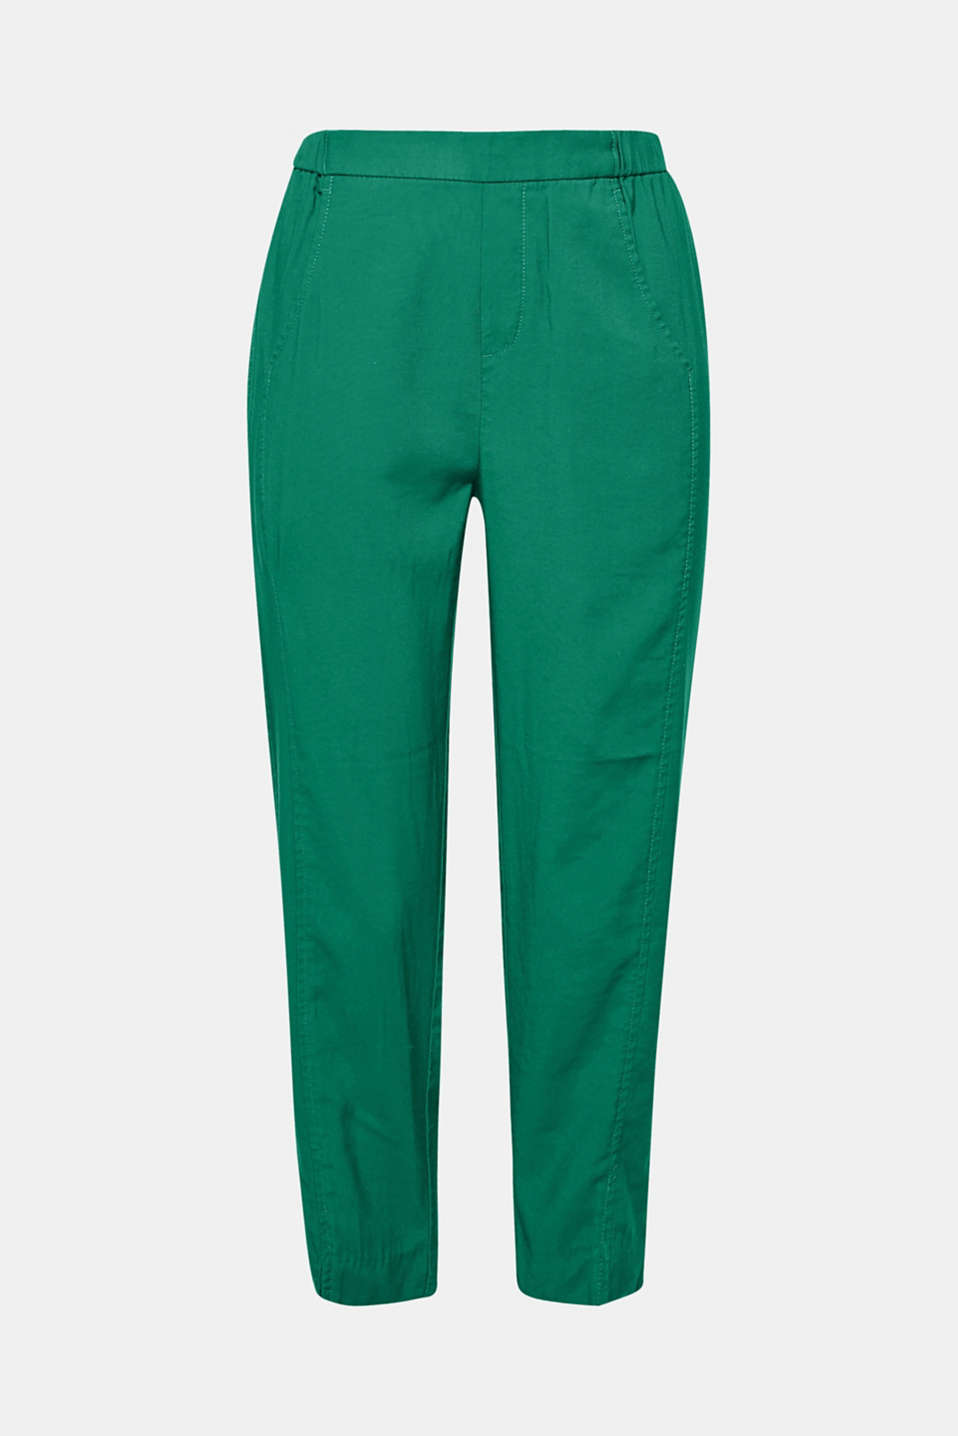 These jogg trousers  in smooth soft woven fabric are a versatile fashion favourite and super comfortable to wear.